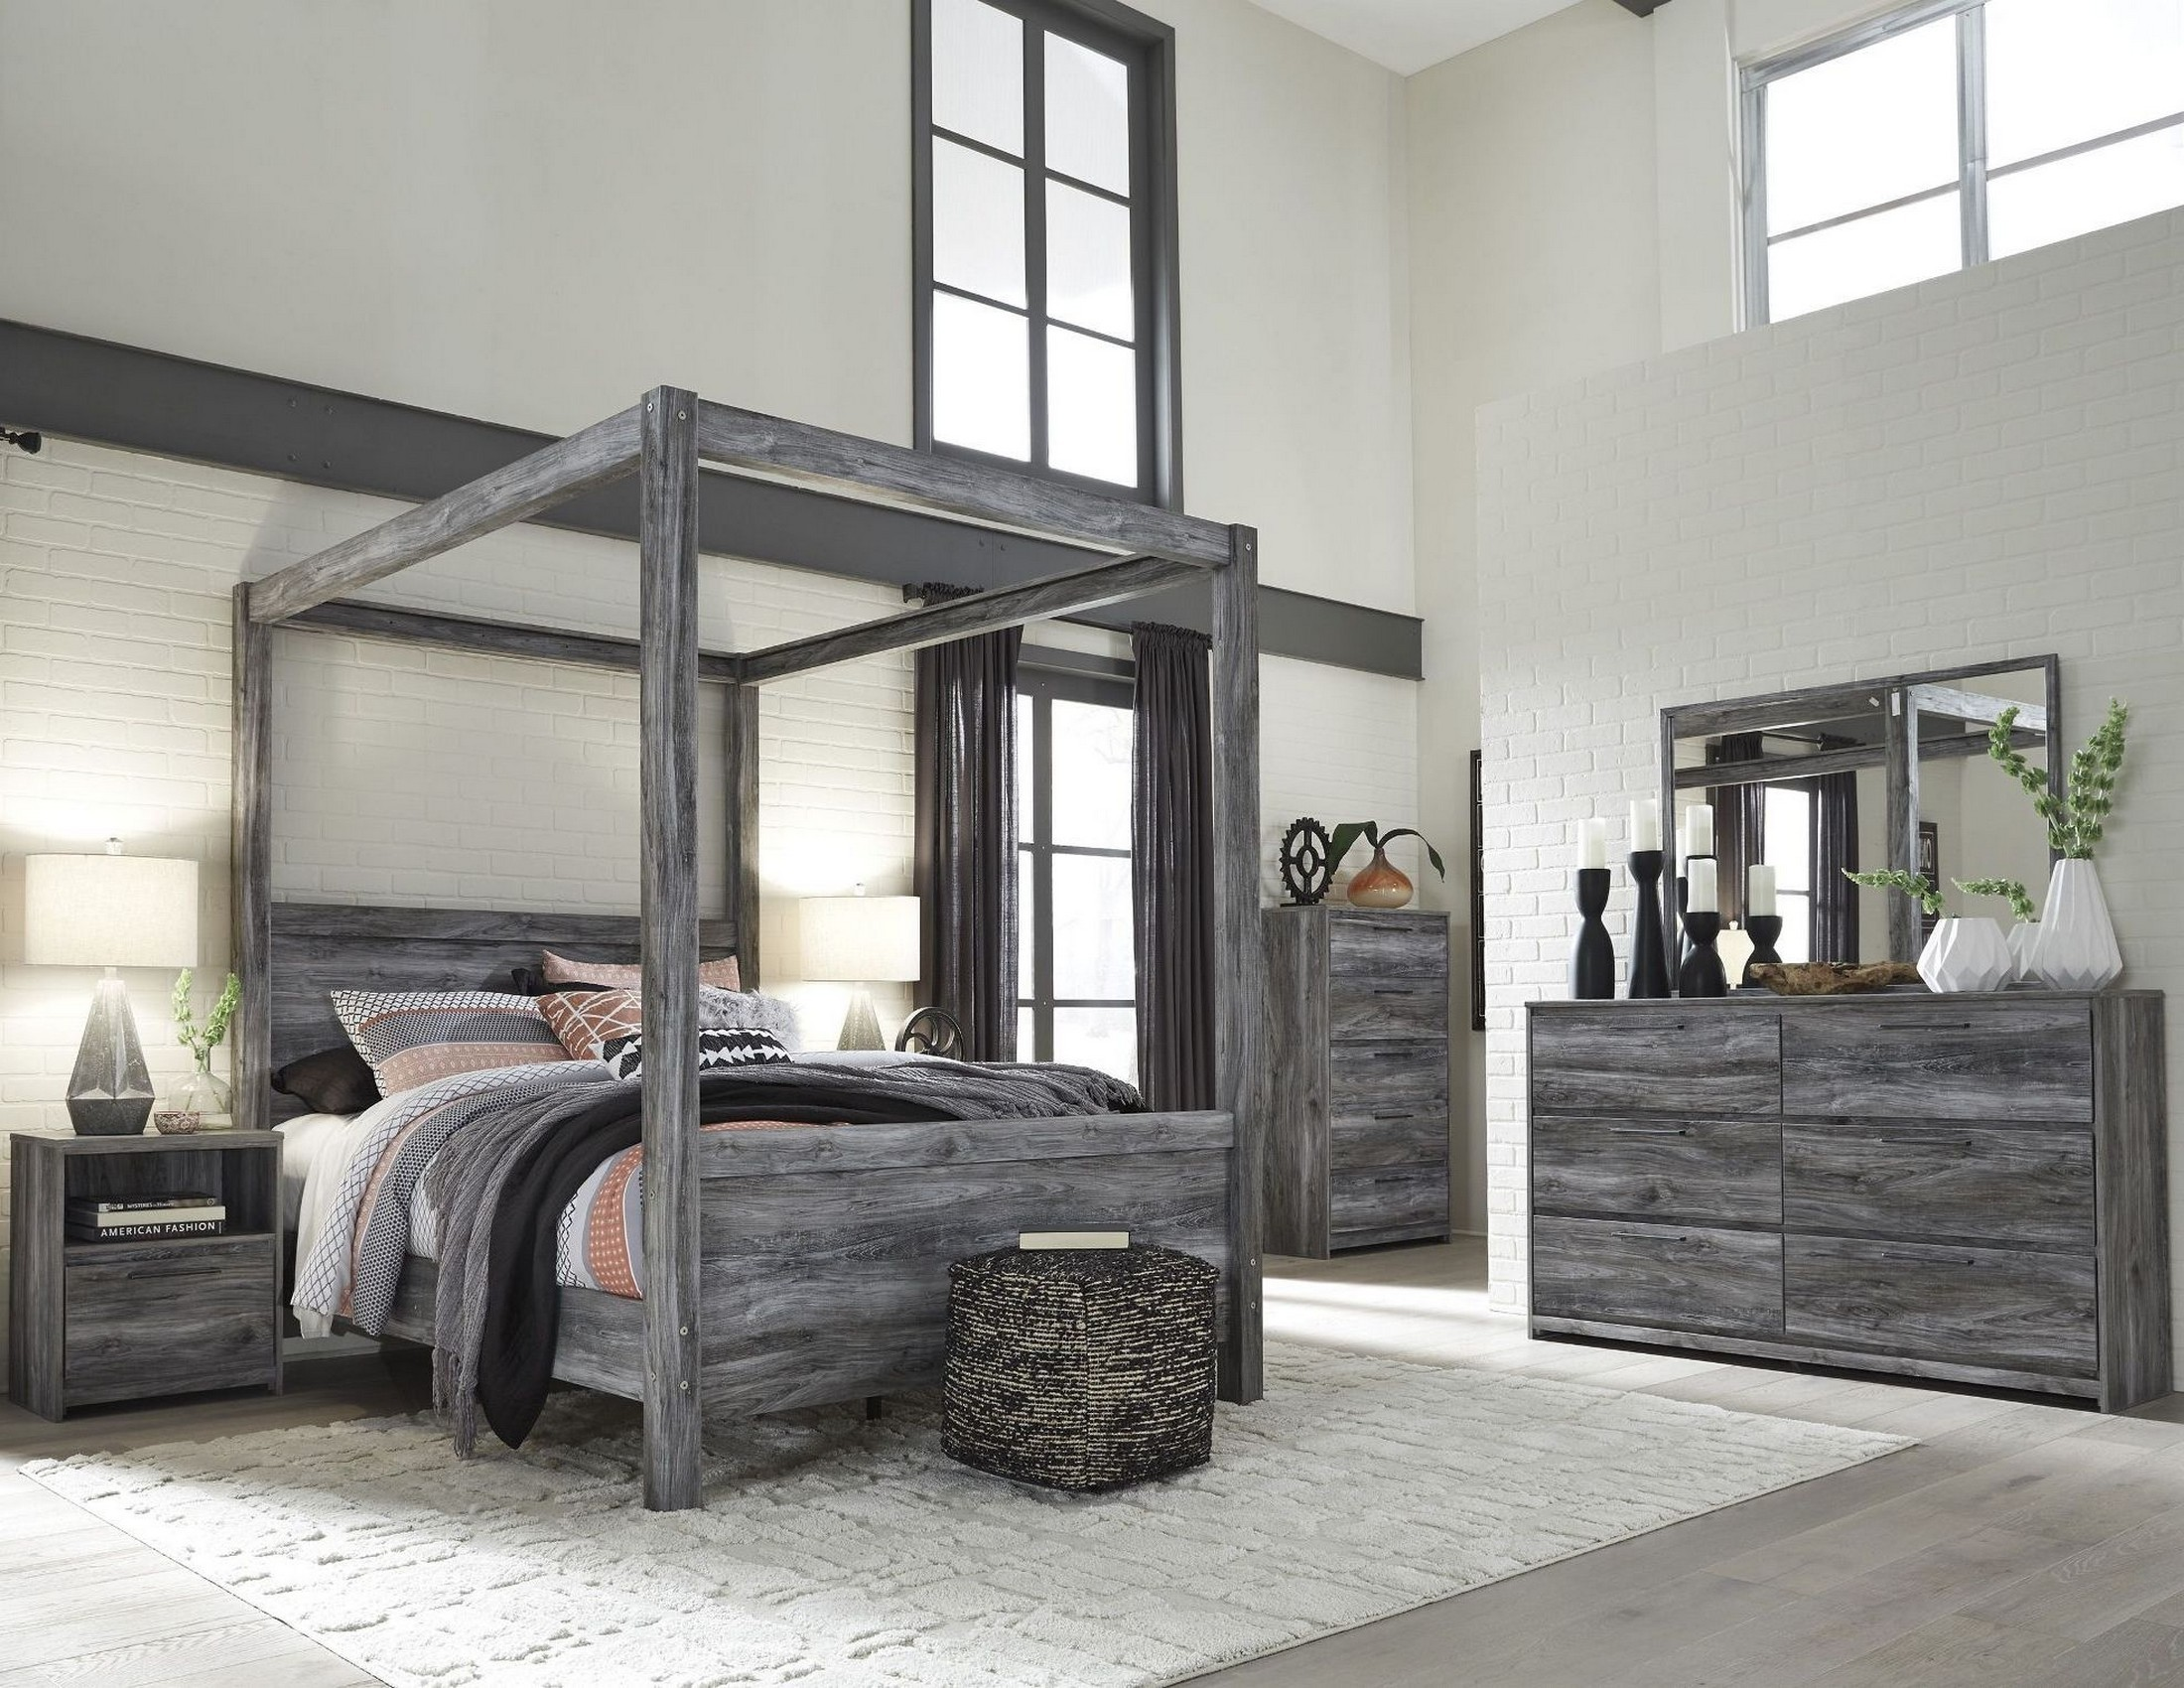 Baystorm Gray Canopy Bedroom Set from Ashley | Coleman Furniture